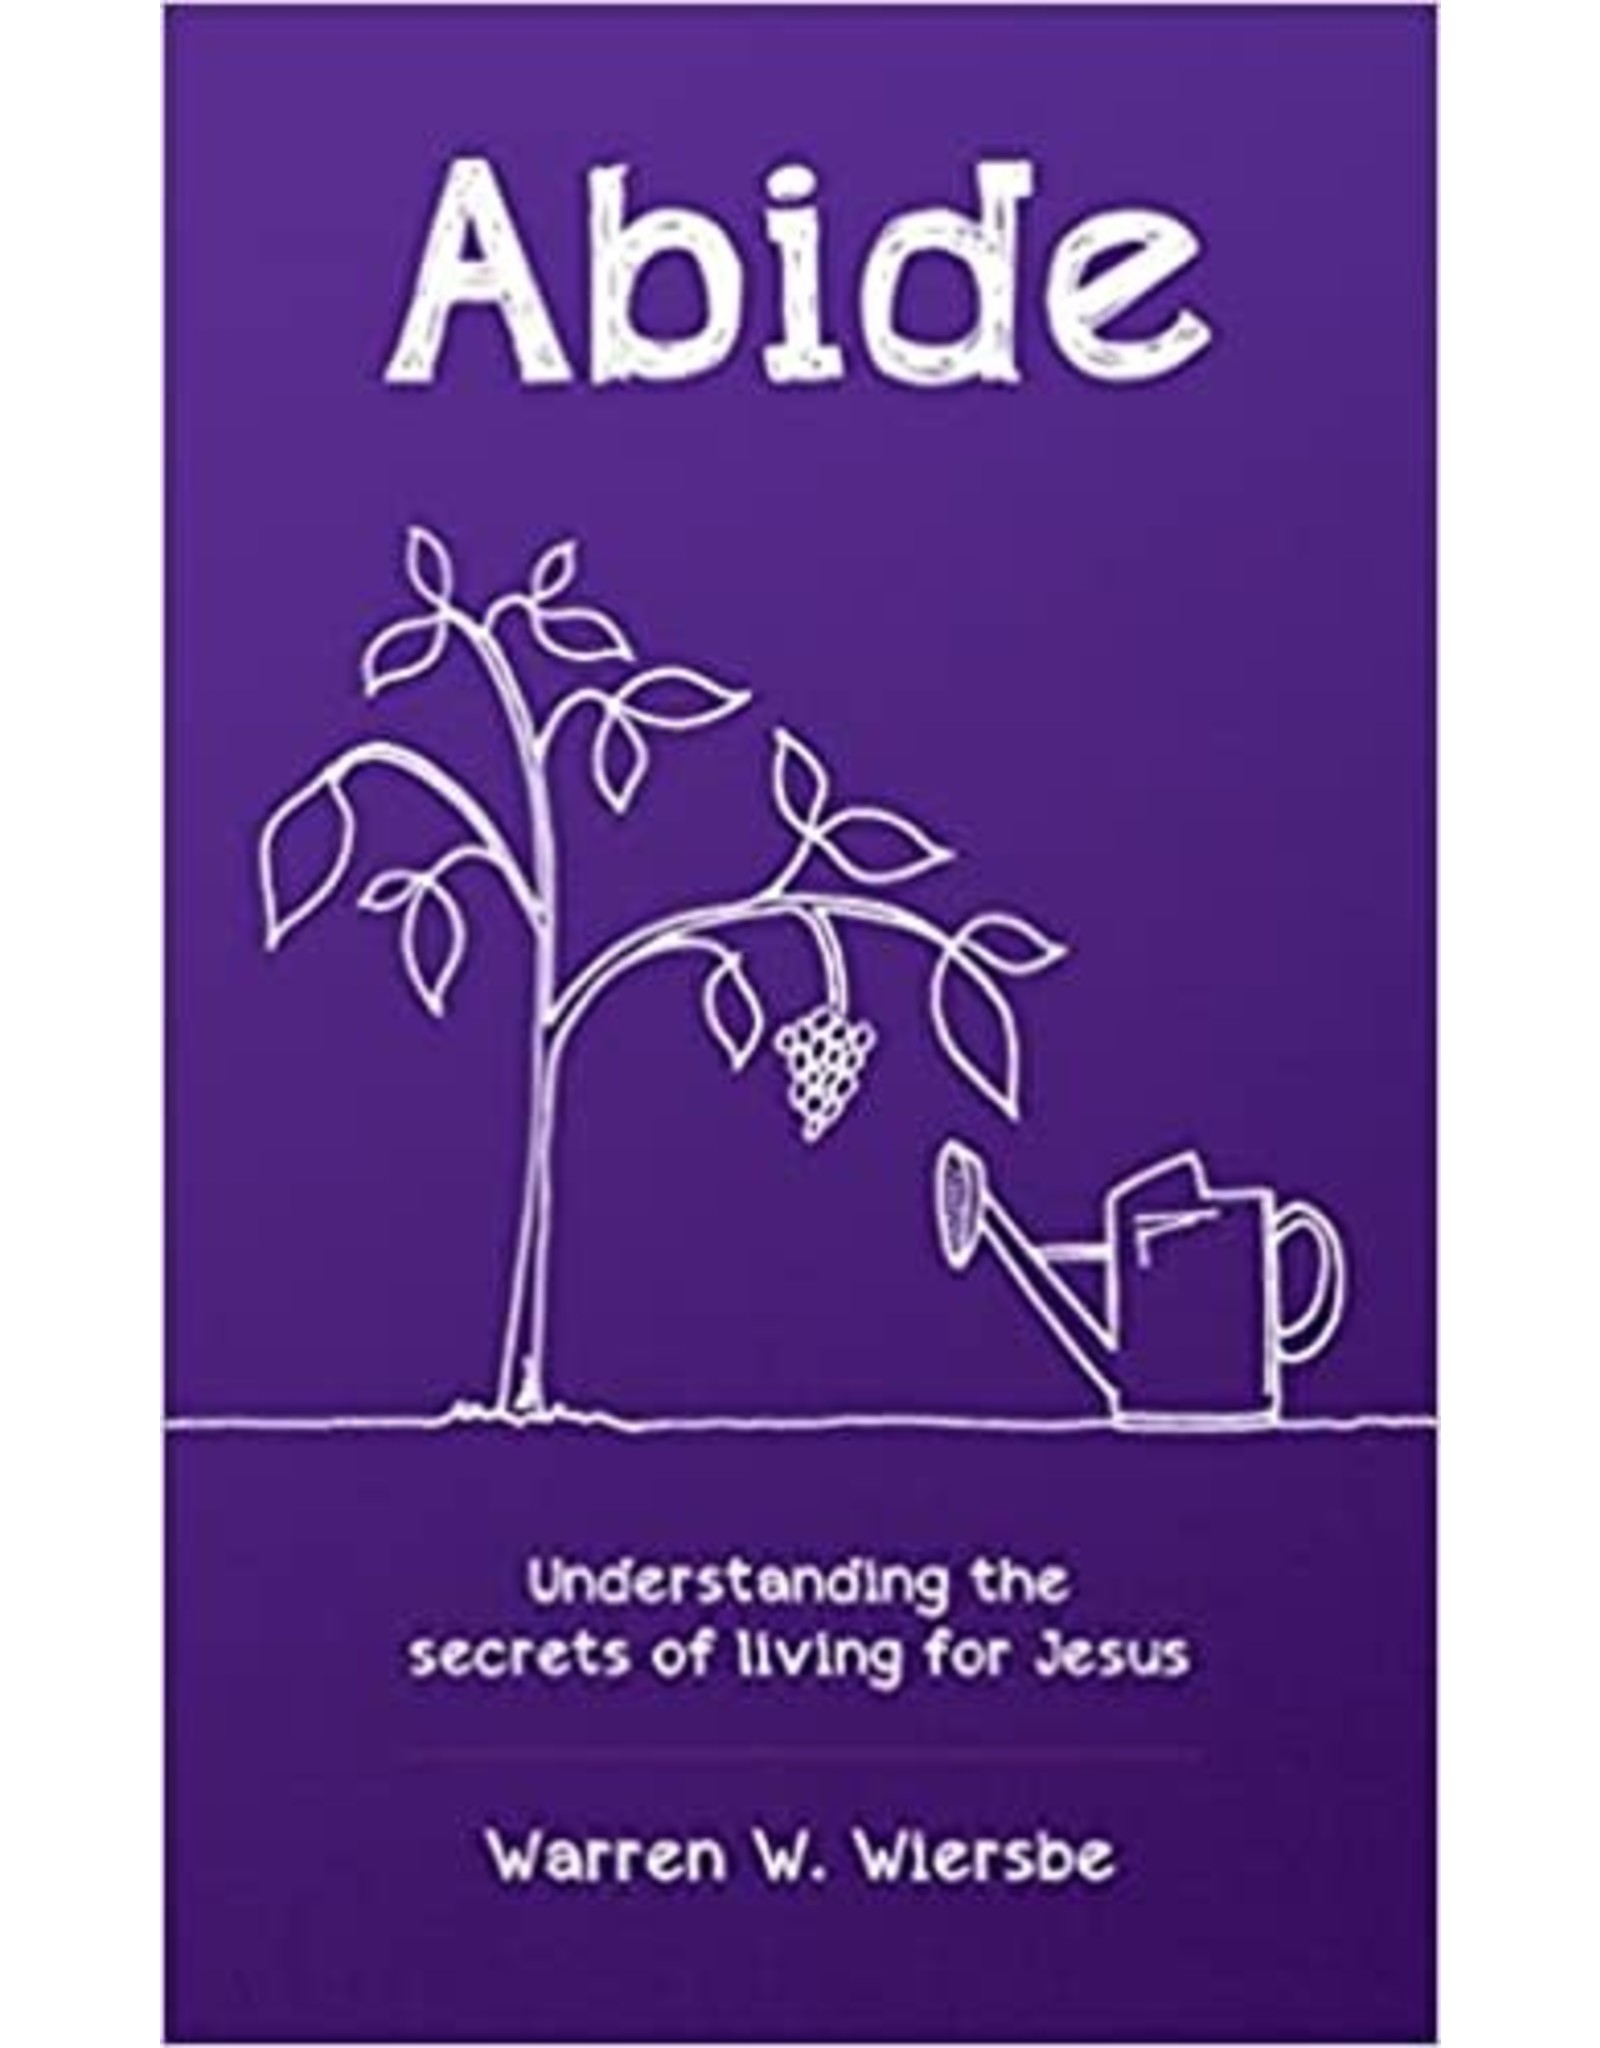 10ofThose / 10 Publishing Abide: Understanding the secrets of living for Jesus